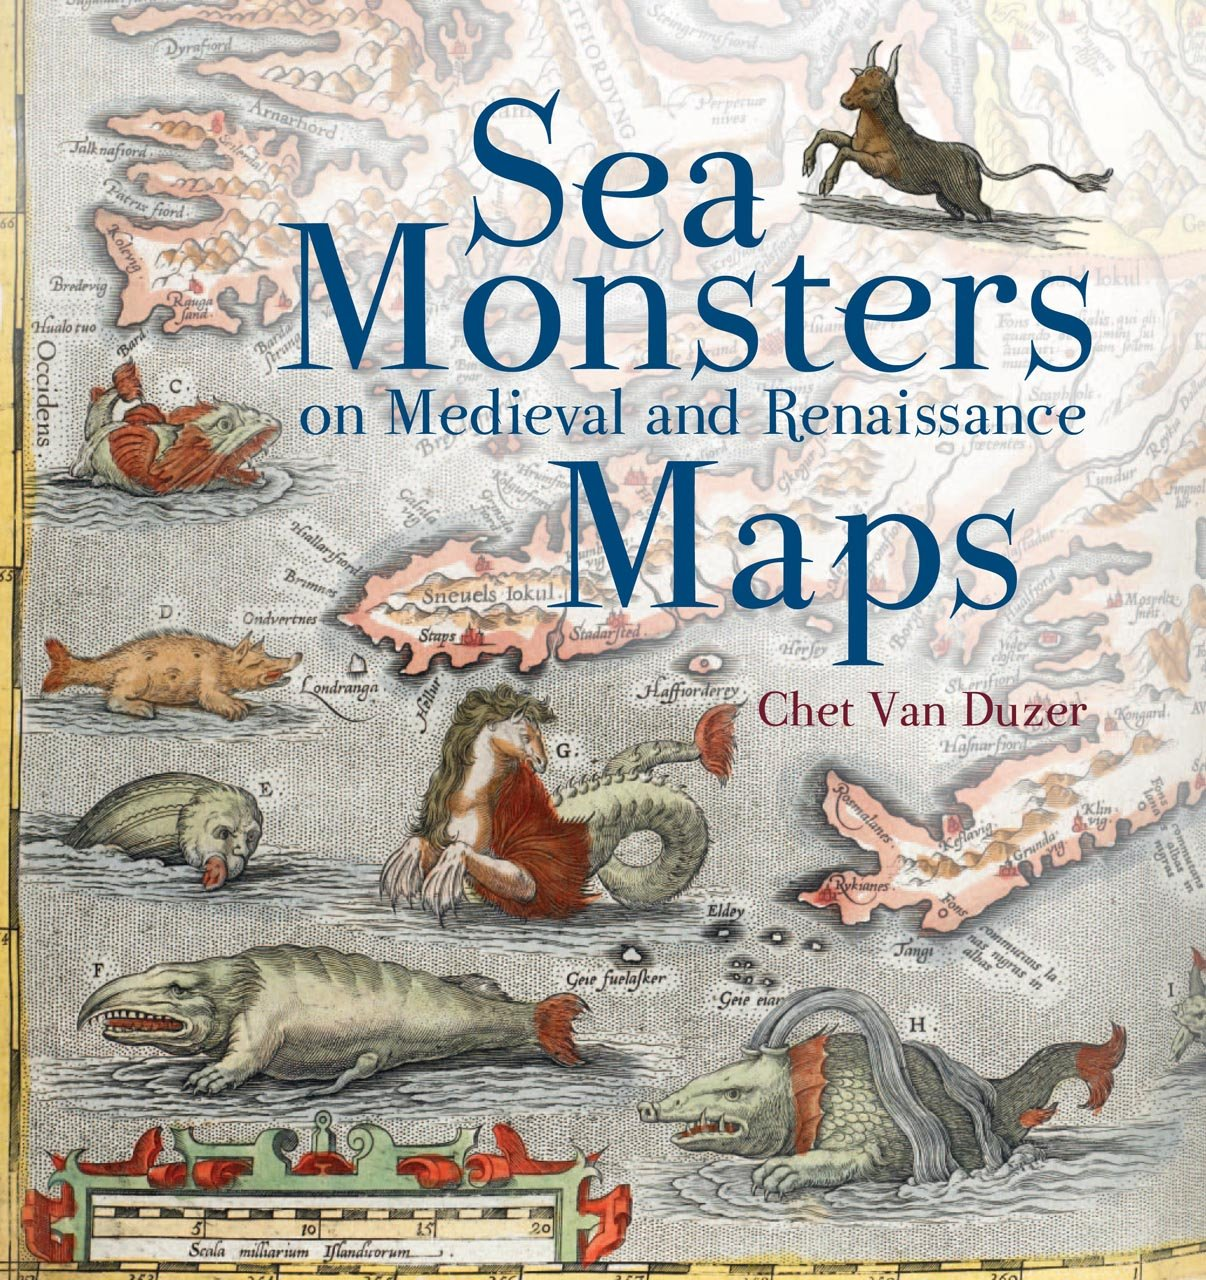 Sea monsters on medieval and renaissance maps chet van duzer sea monsters on medieval and renaissance maps chet van duzer 9780712357715 amazon books gumiabroncs Images